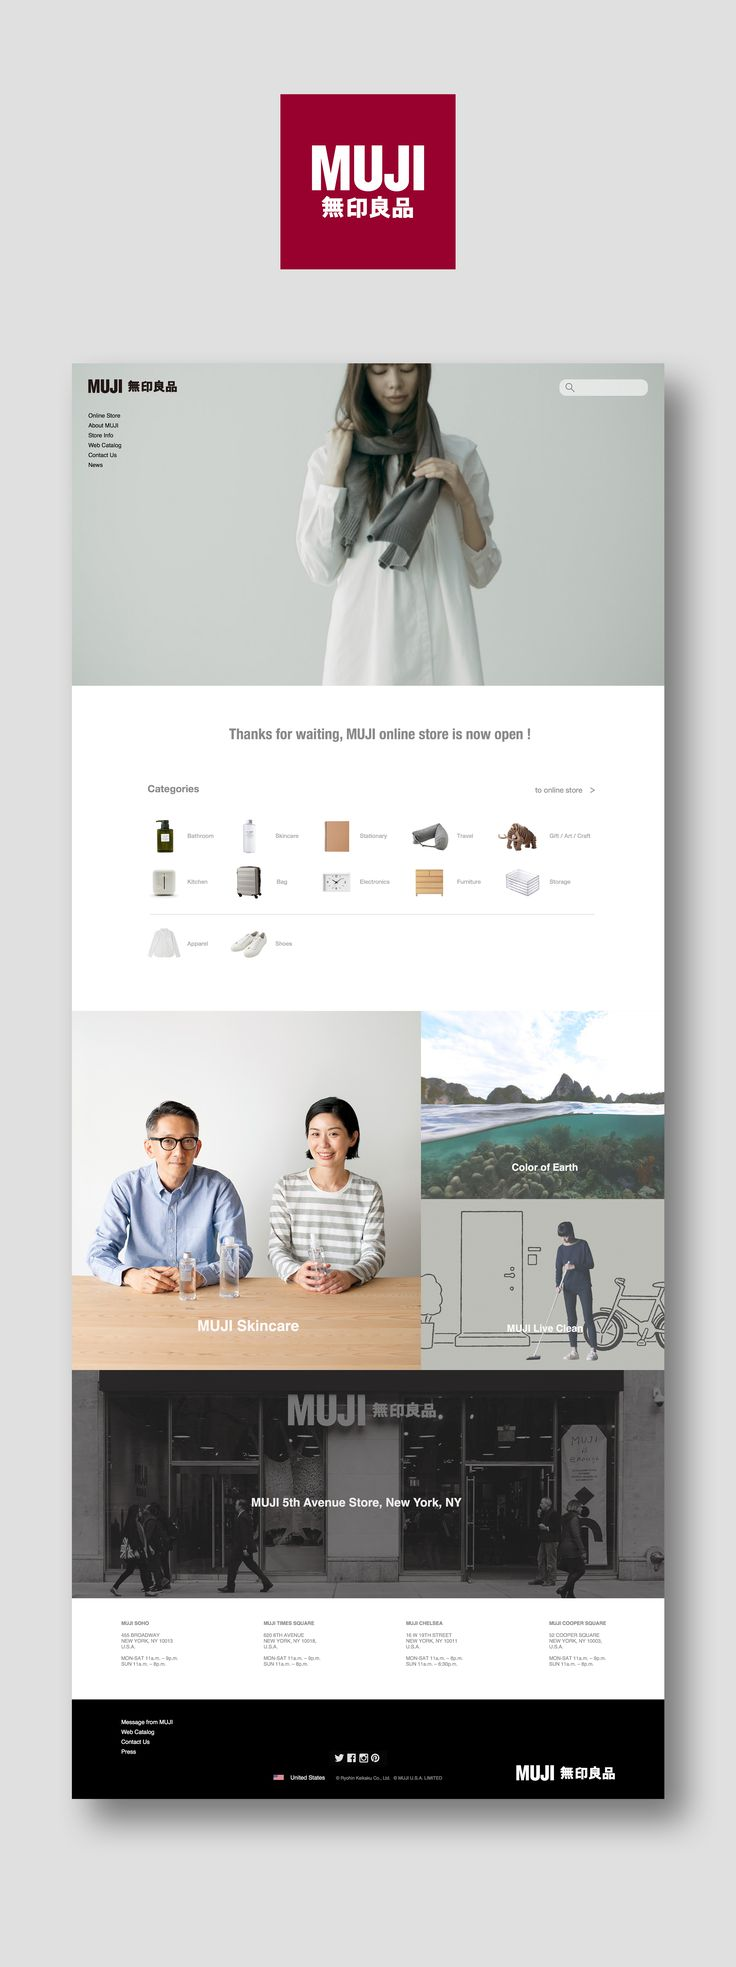 Ryohin Keikaku Co.,Ltd. , or Muji (無印良品 ) is a Japanese retail company which sells a wide variety of household and consumer goods. Muji is distinguished by its design minimalism, emphasis on recycling, avoidance of waste in production and packaging, and n…